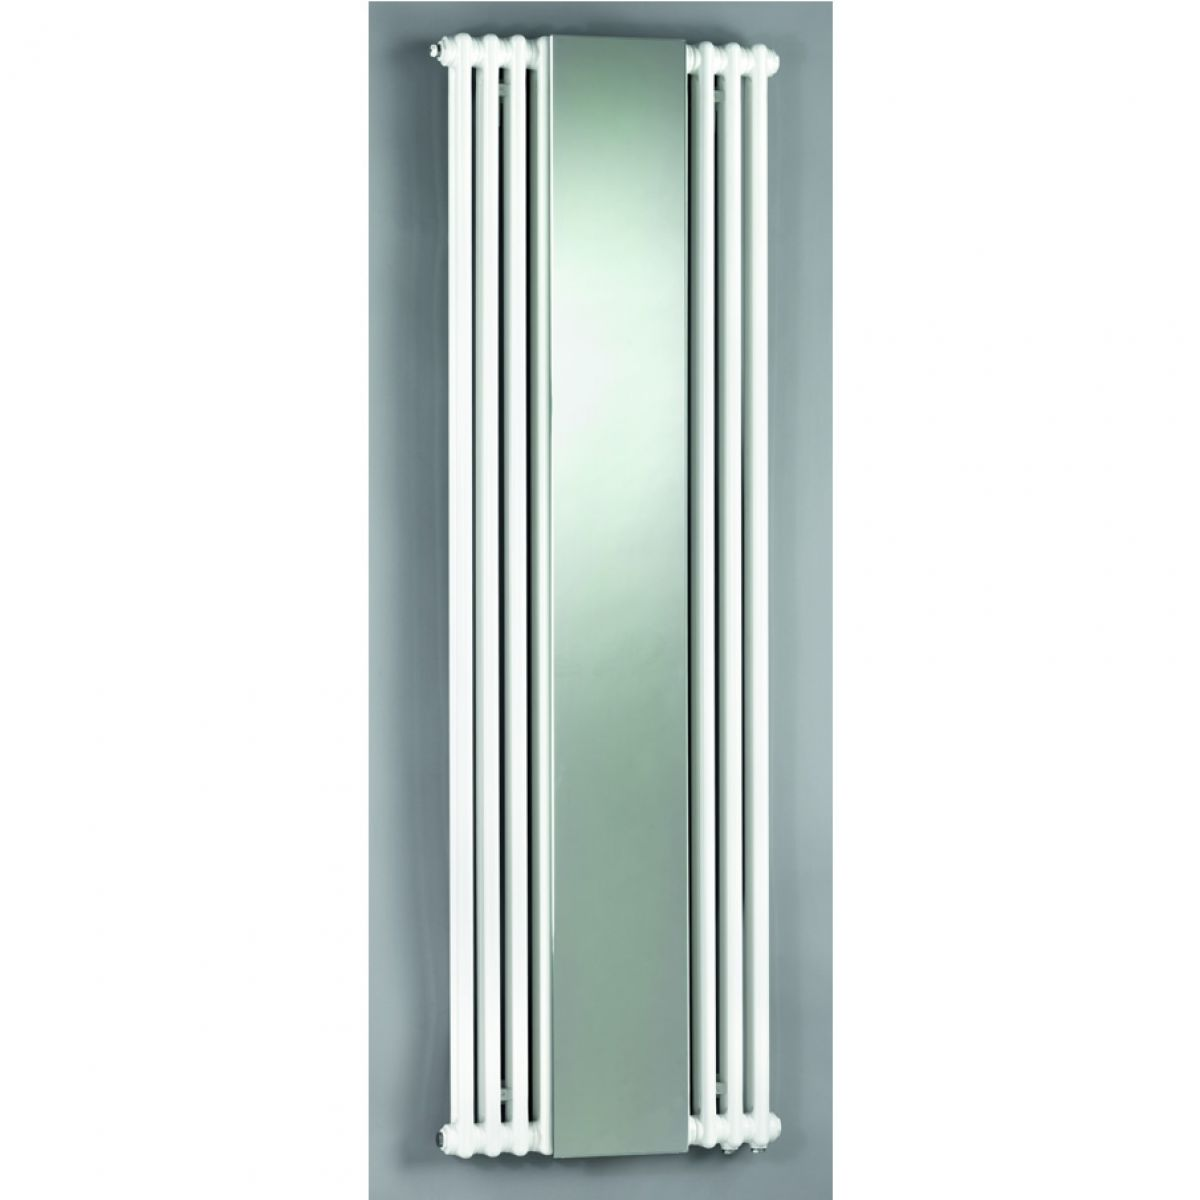 zehnder charleston mirror radiator uk bathrooms